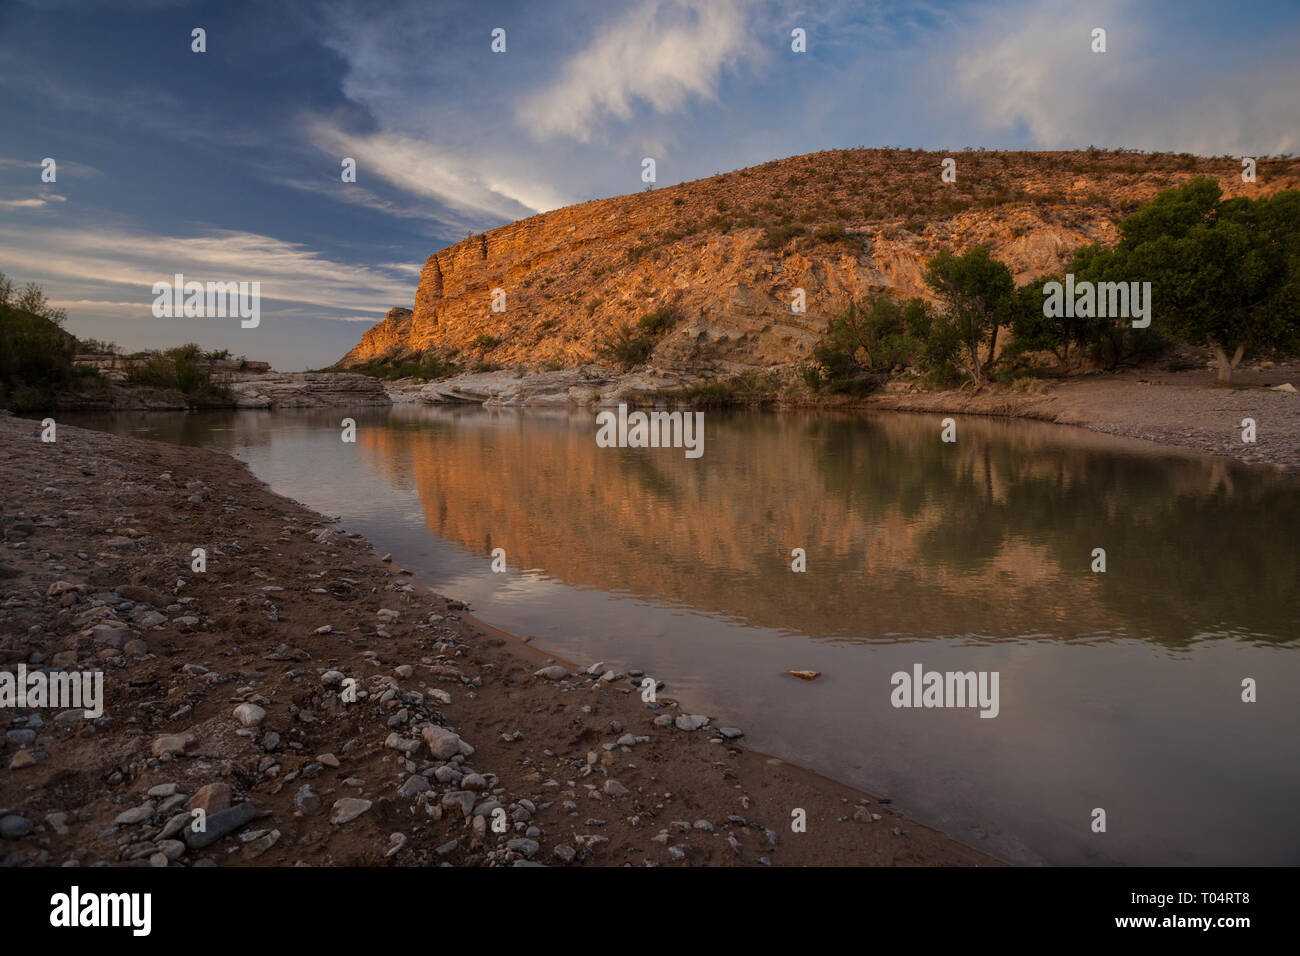 Terlingua, Brewster County, Texas, USA - Stock Image